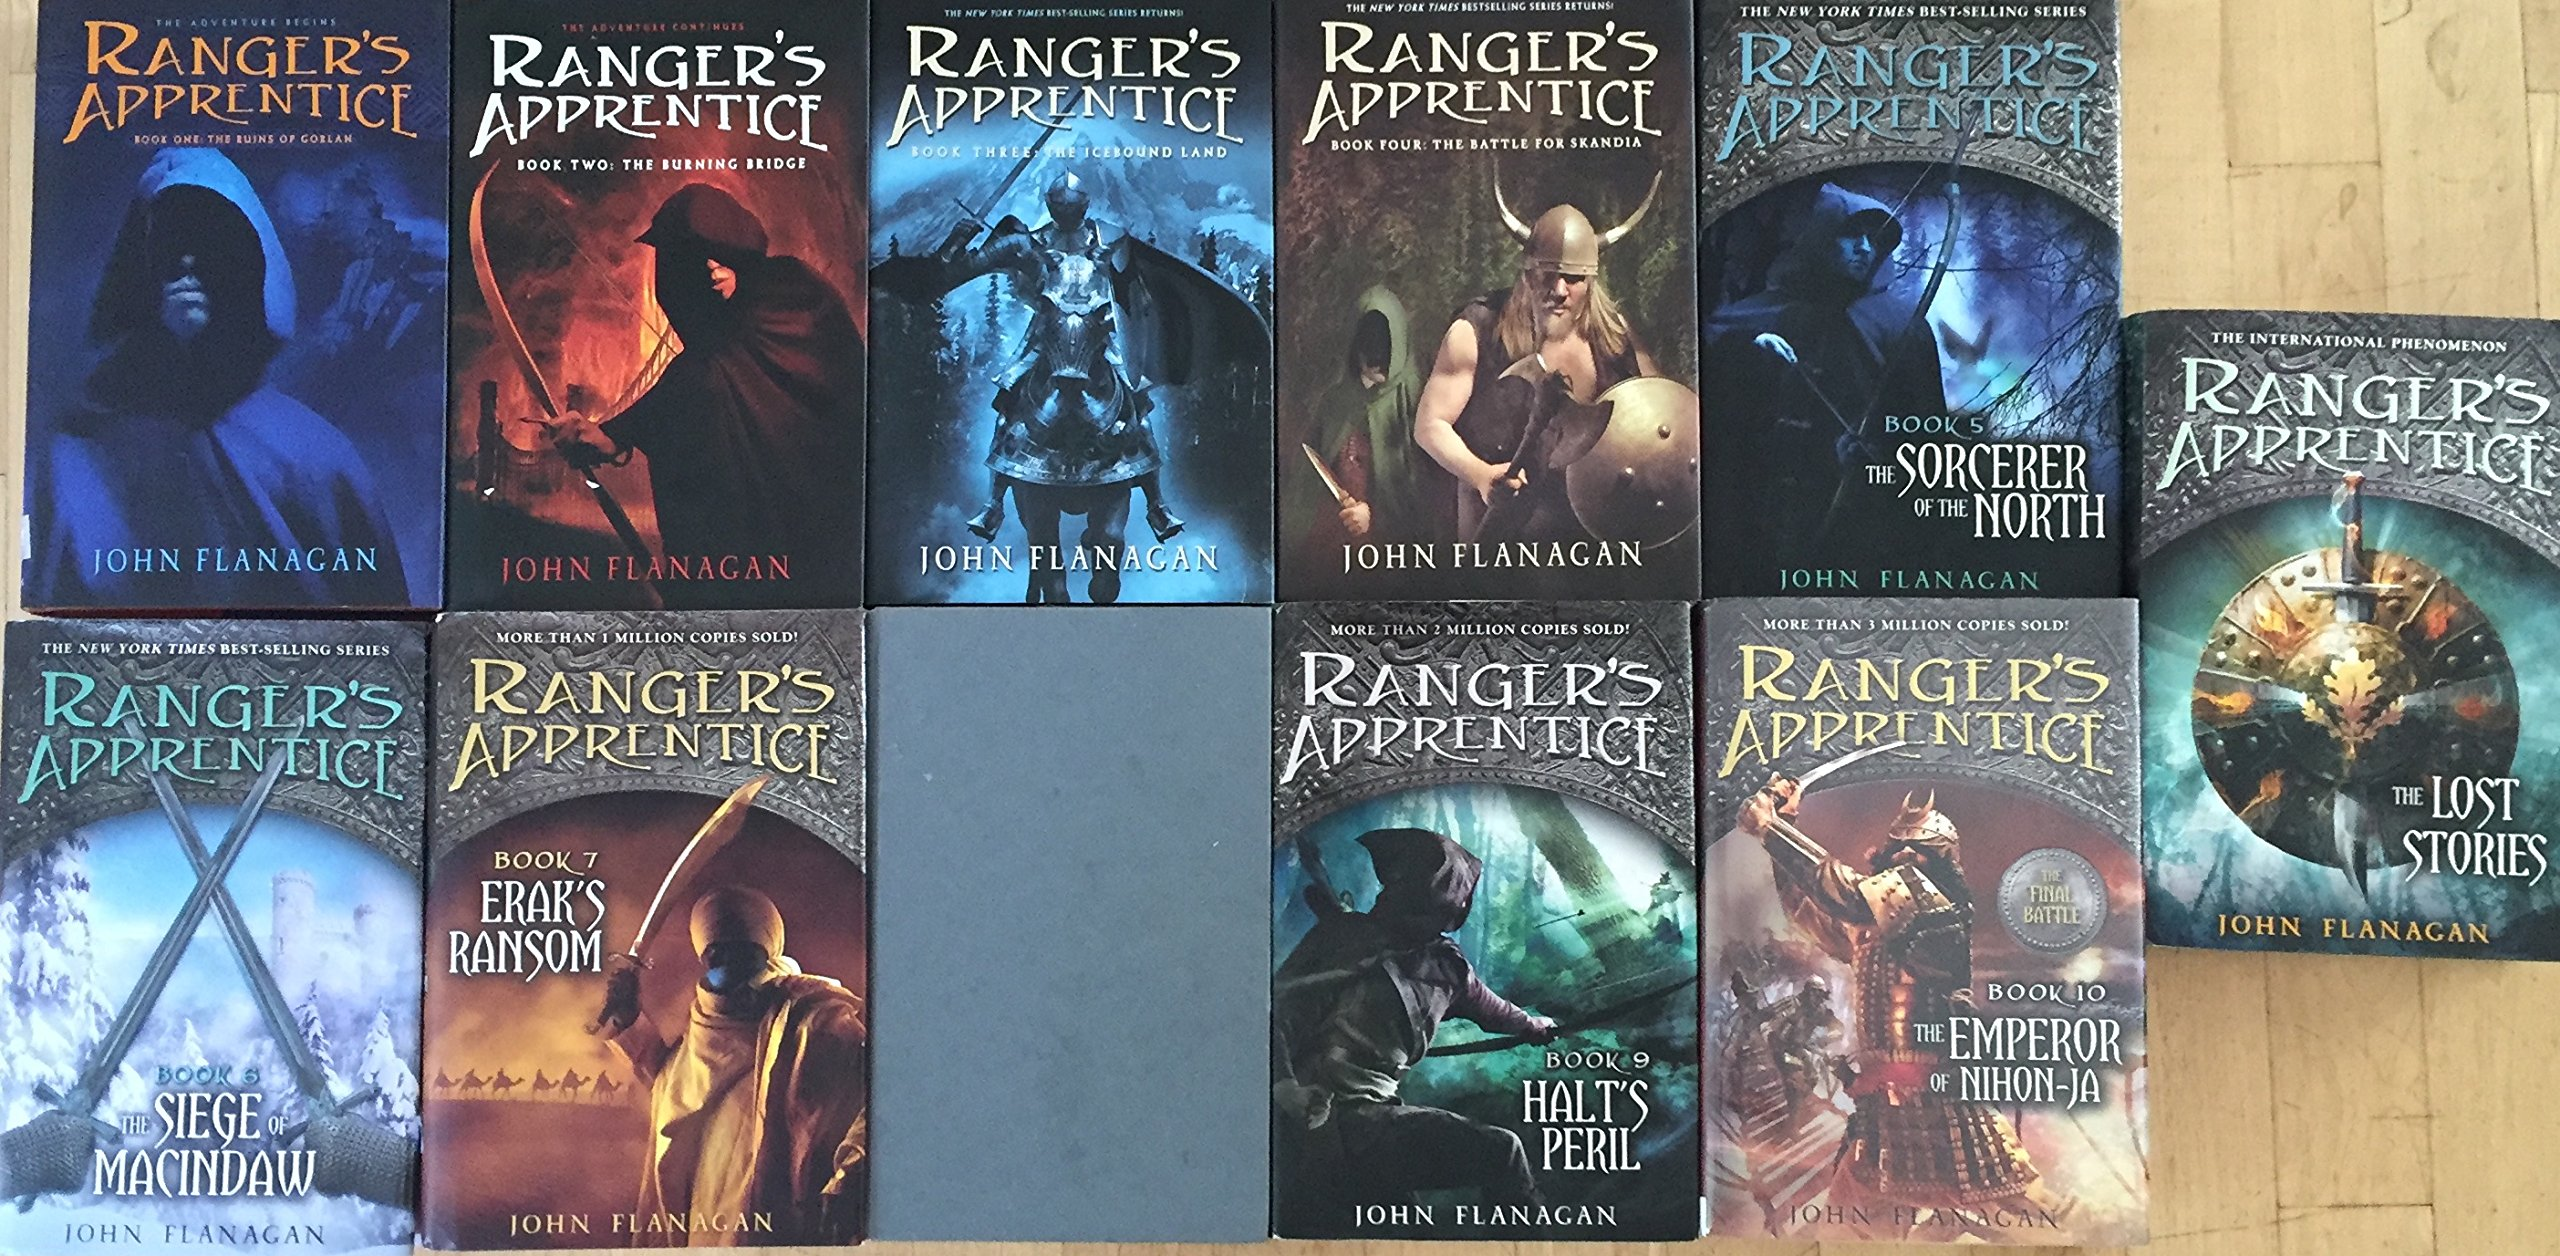 Download Ranger's Apprentice Hardcover Series Set by John Flanigan Books 1-10 plus Lost Stories pdf